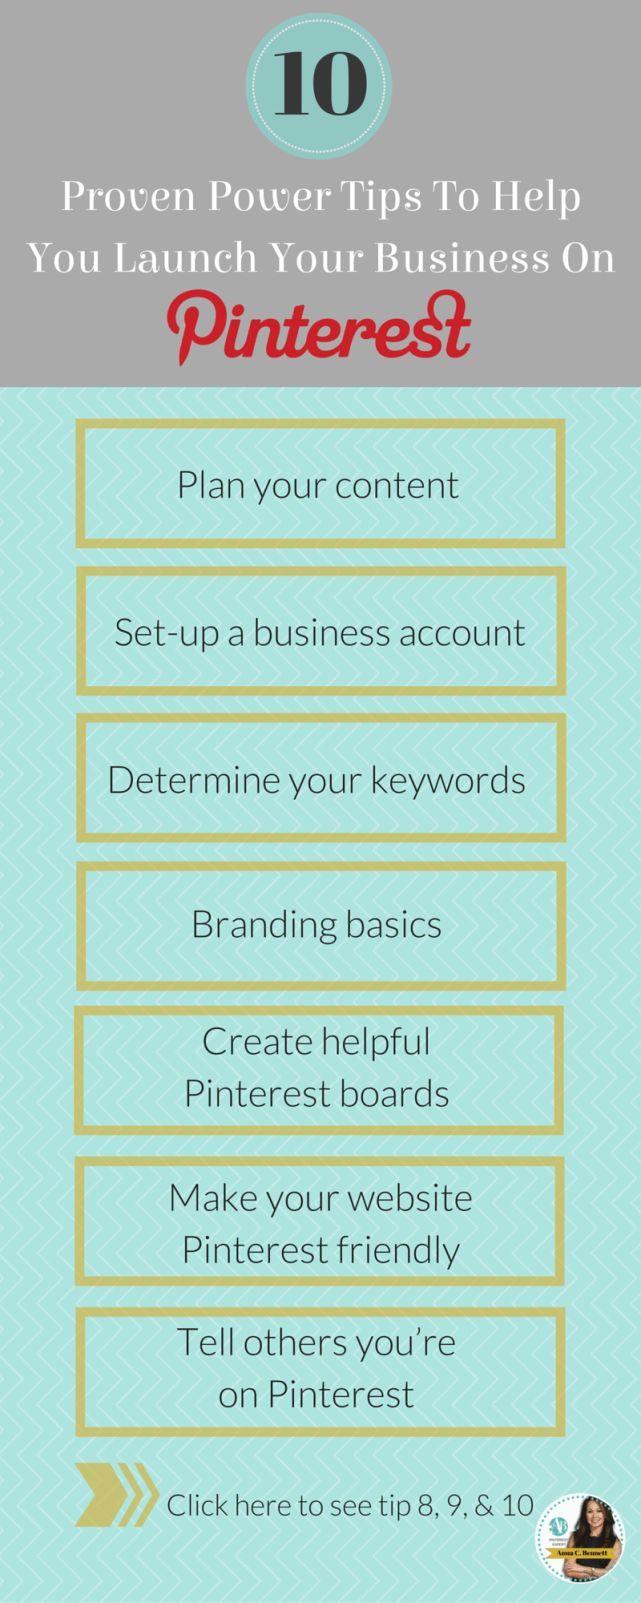 10 proven power tips to help you launch your business on Pinterest. This blog is super helpful for marketing on social media! Very straight forward.